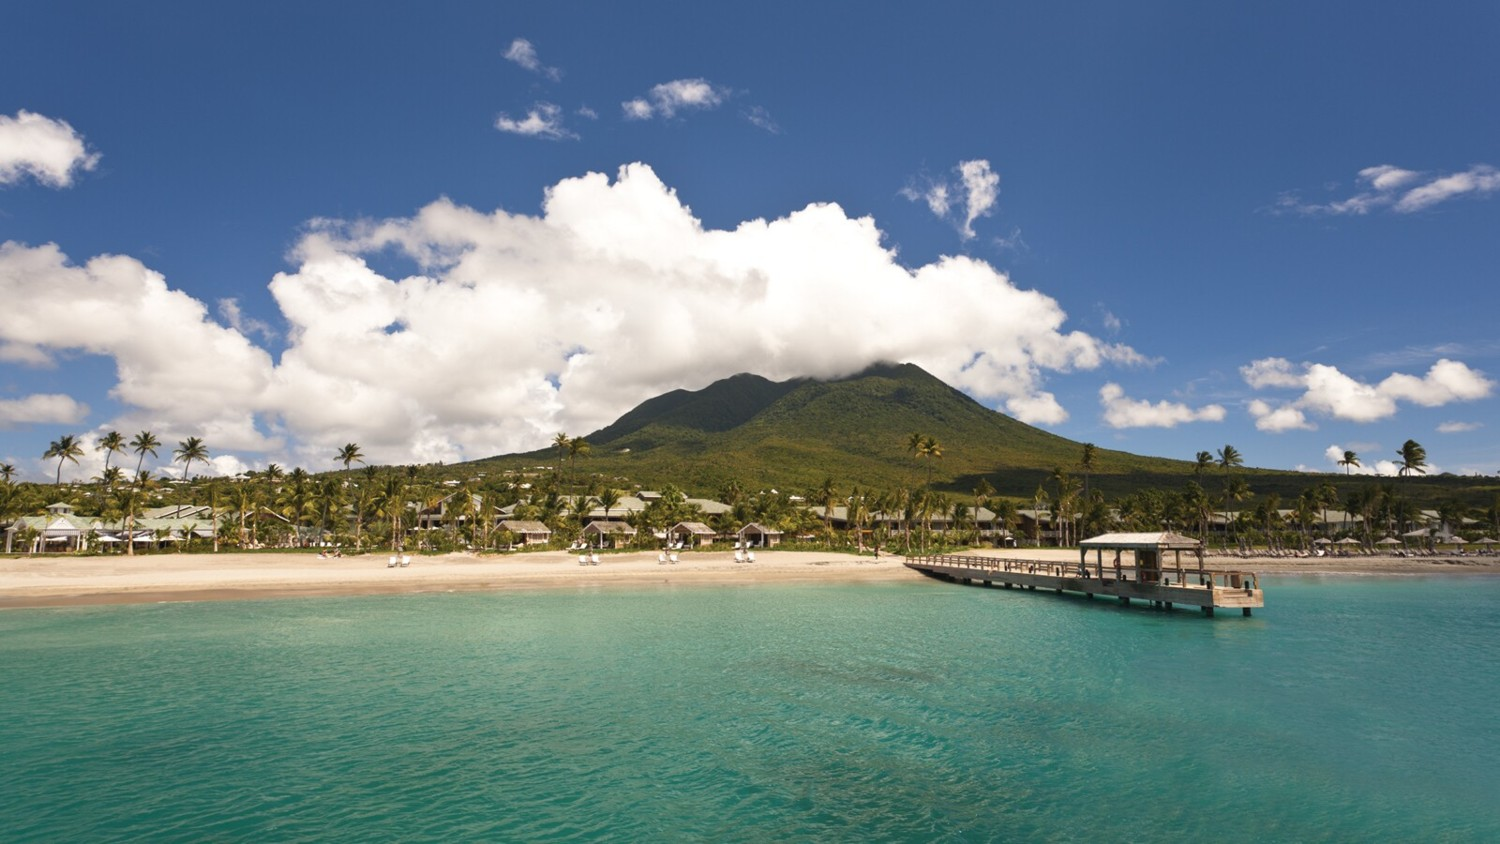 Four Seasons Nevis as seen from the private ferry between Porte Zante, St. Kitts to its private dock on Nevis